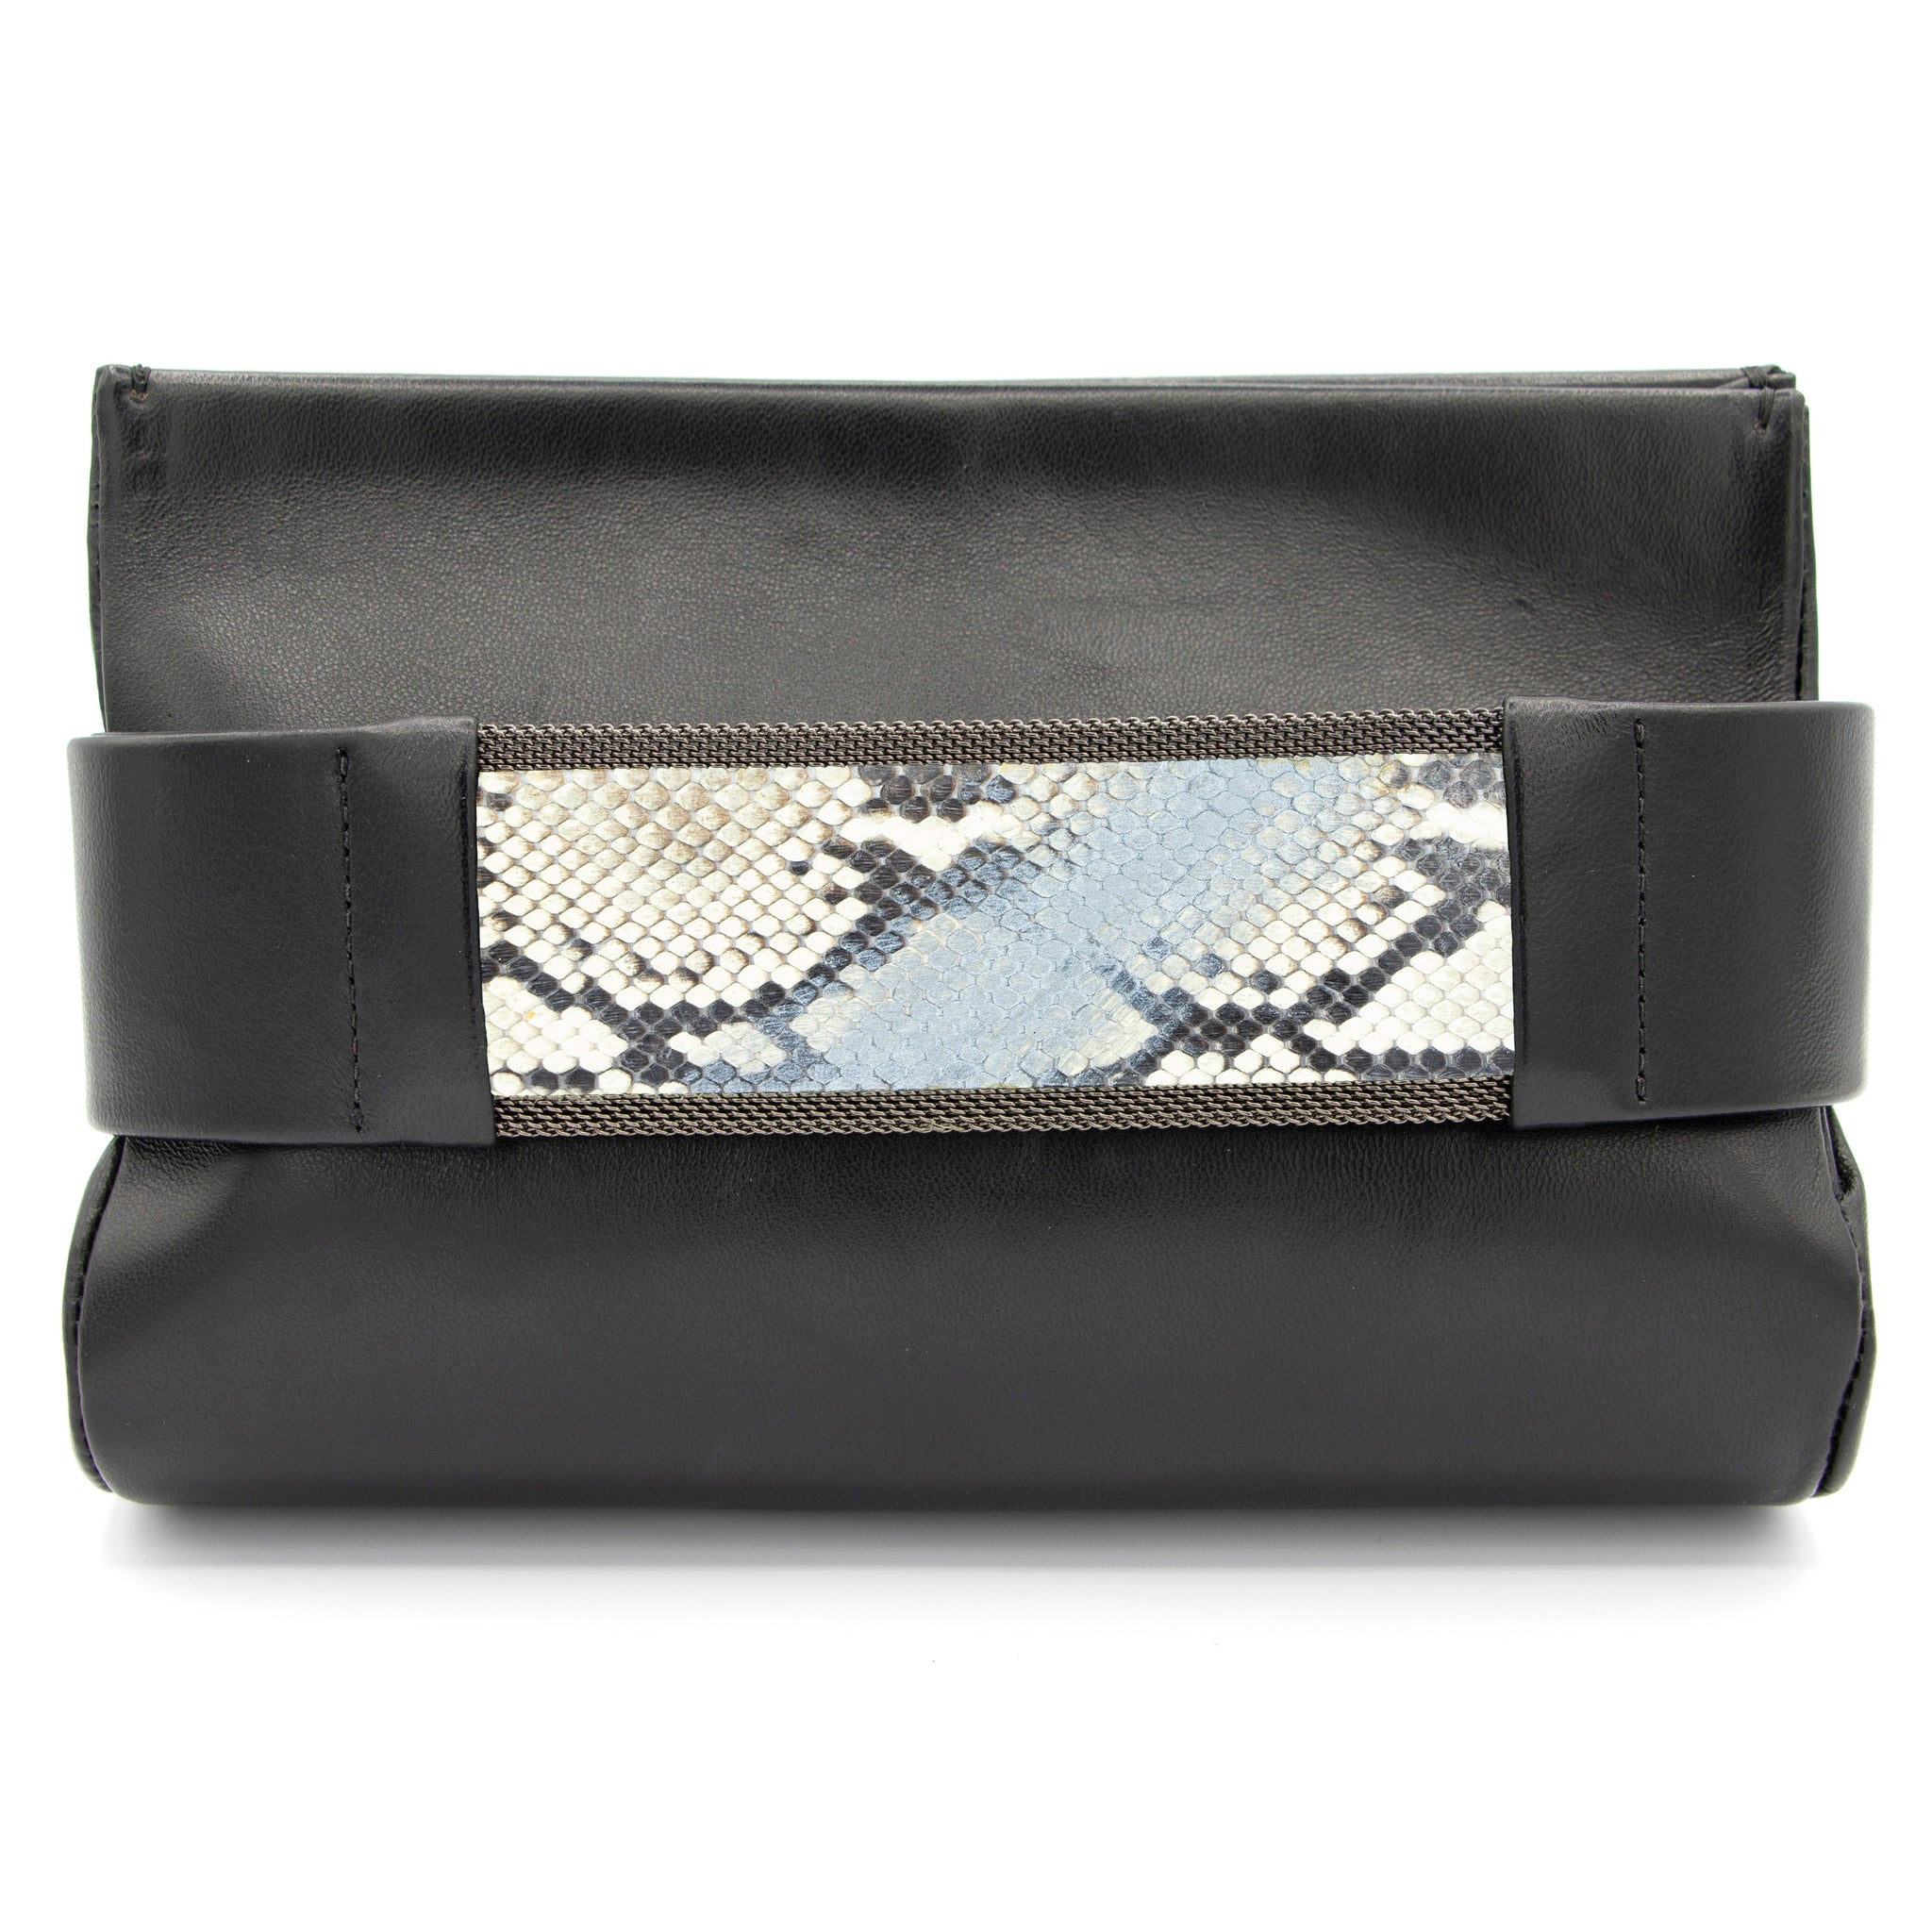 Pewter to Silver Natural Snakeskin Clutch Bag